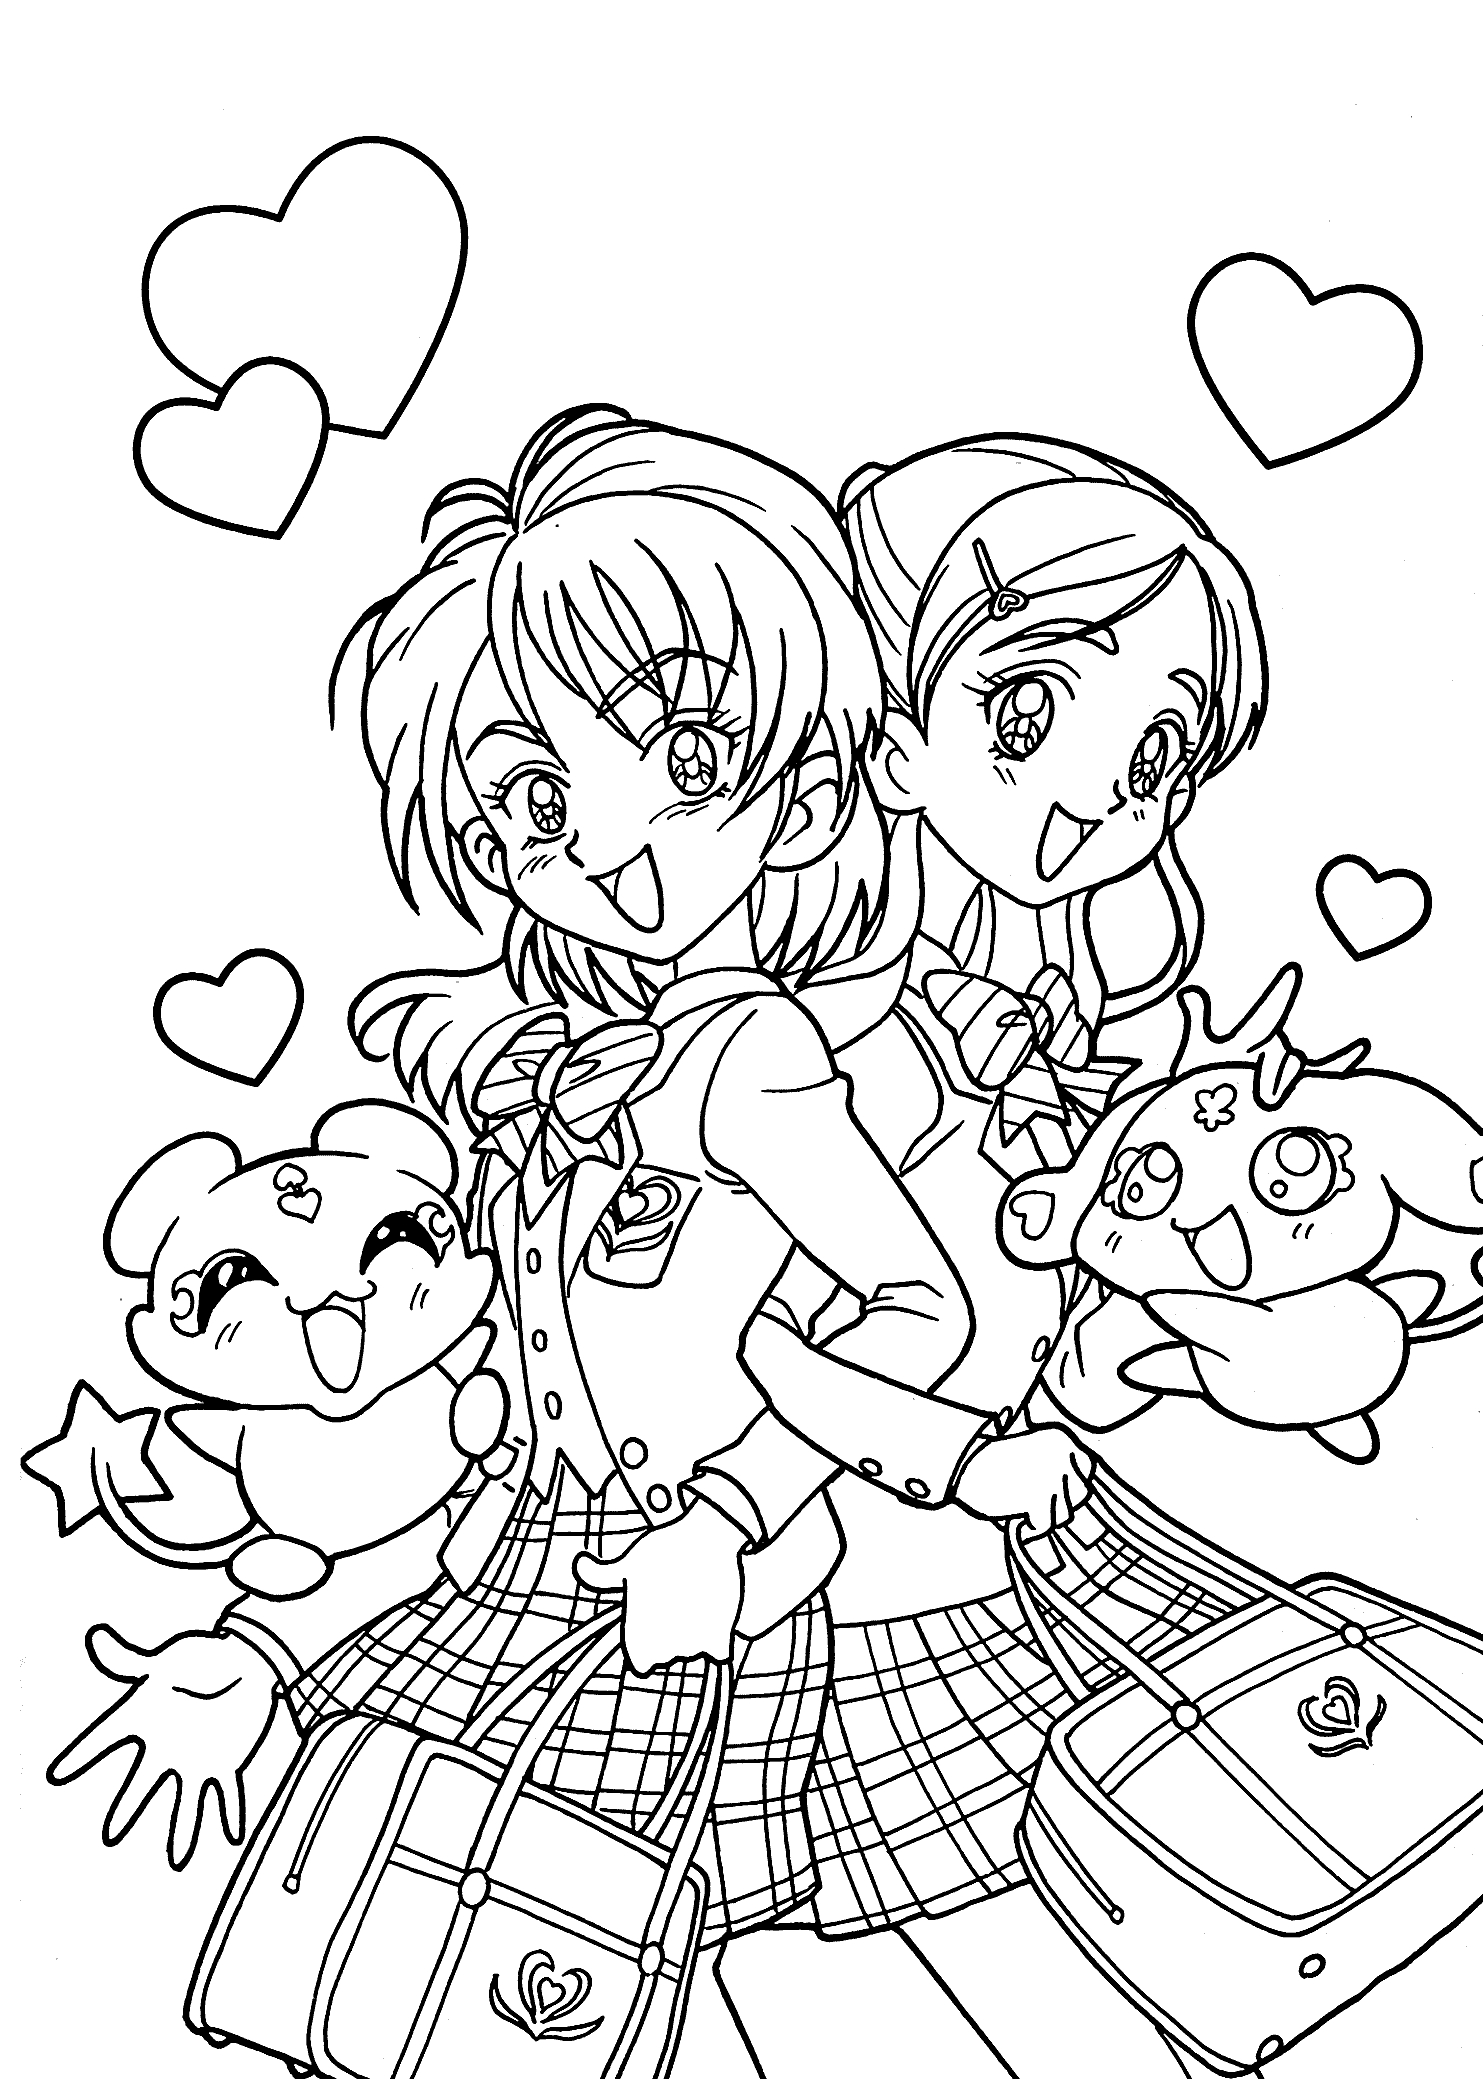 school girl coloring pages anime school girl coloring pages at getcoloringscom pages school girl coloring